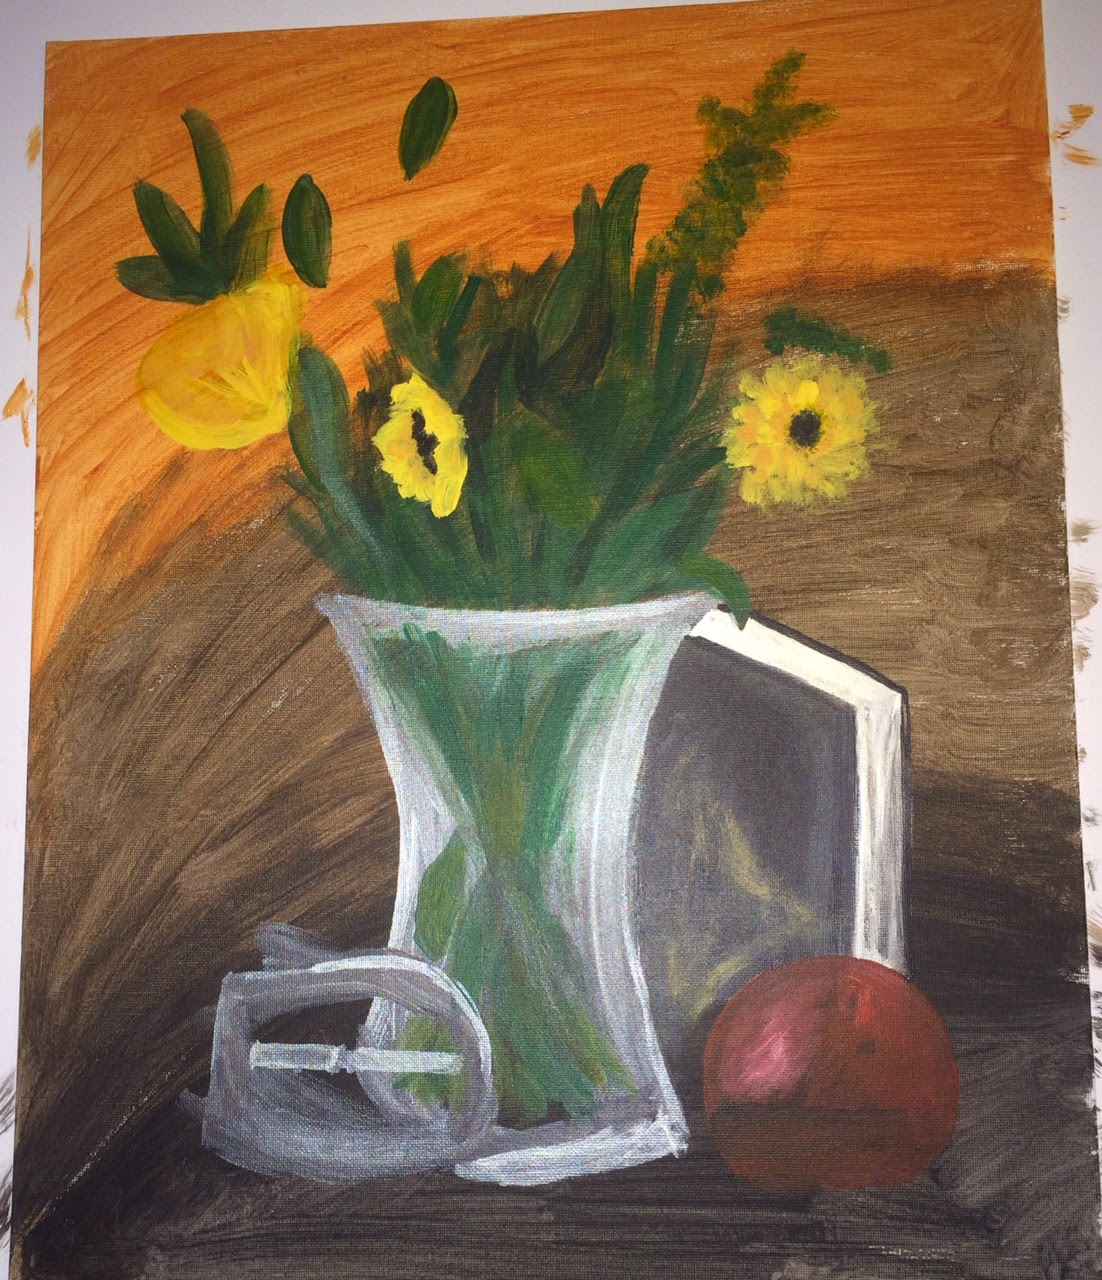 Still life painting of flowers in vase with book | Business, Life & Design